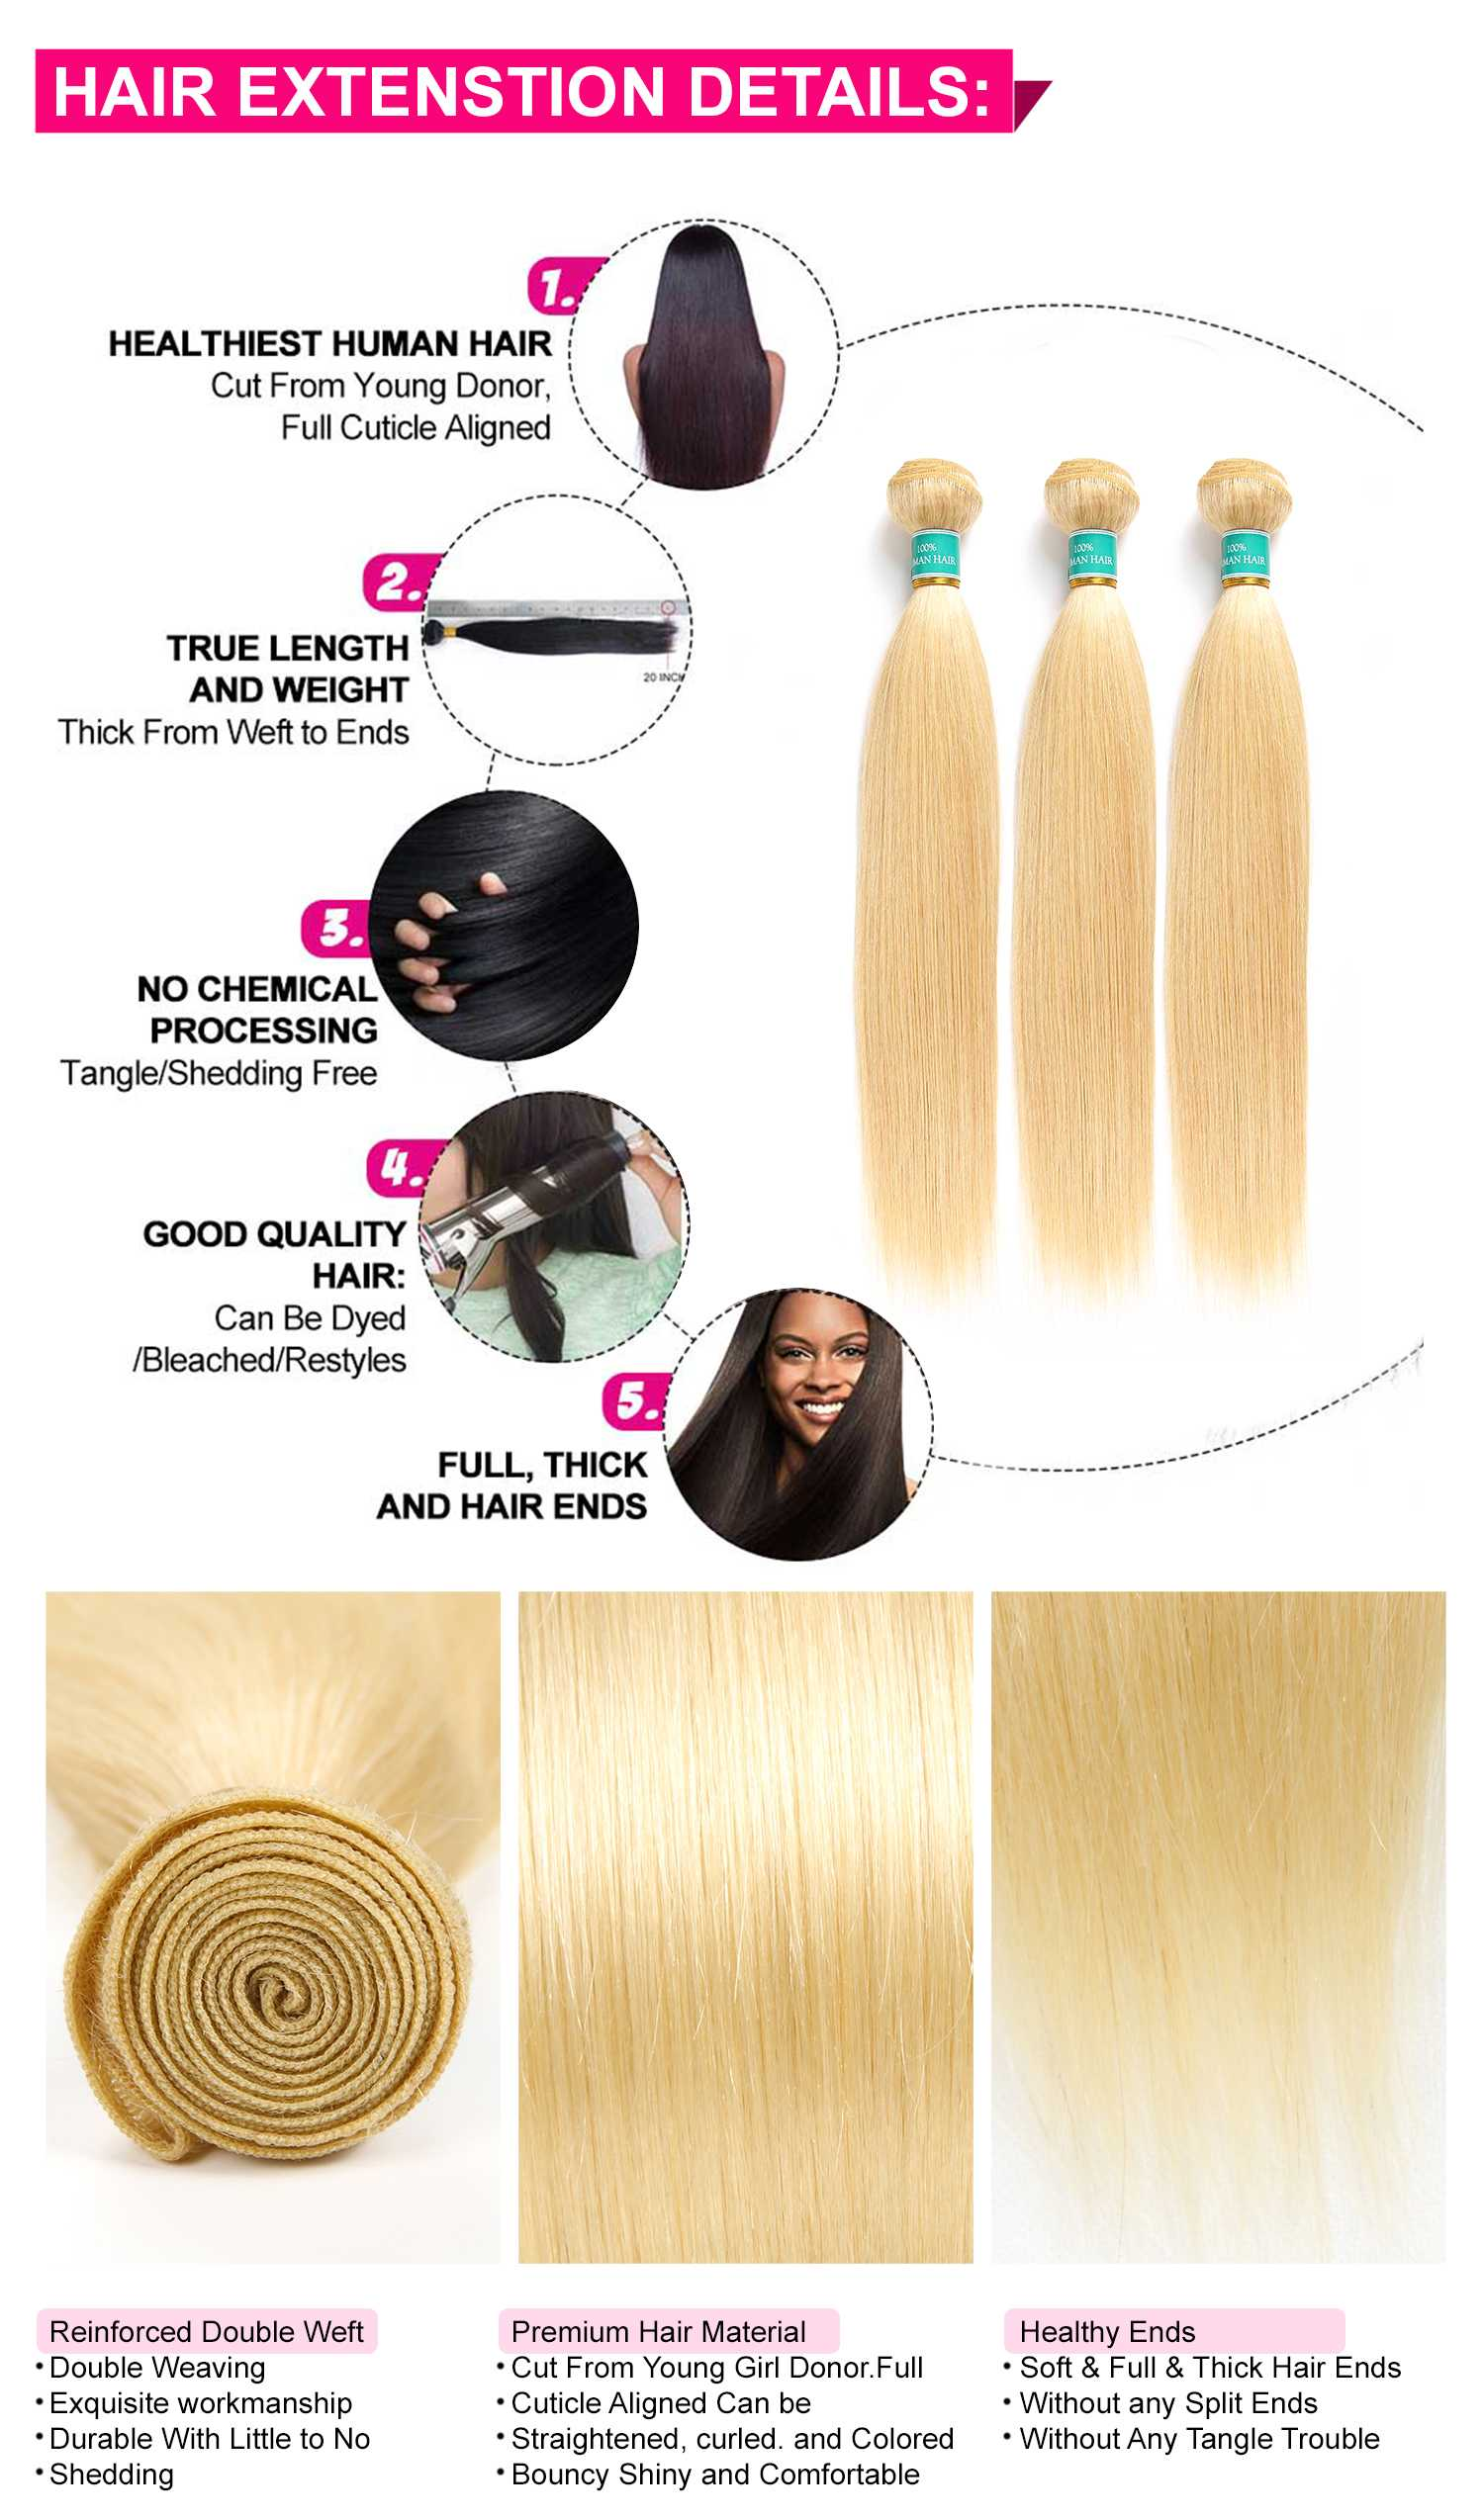 Brazilian 613 blonde Straight Hair 3 Bundles-4